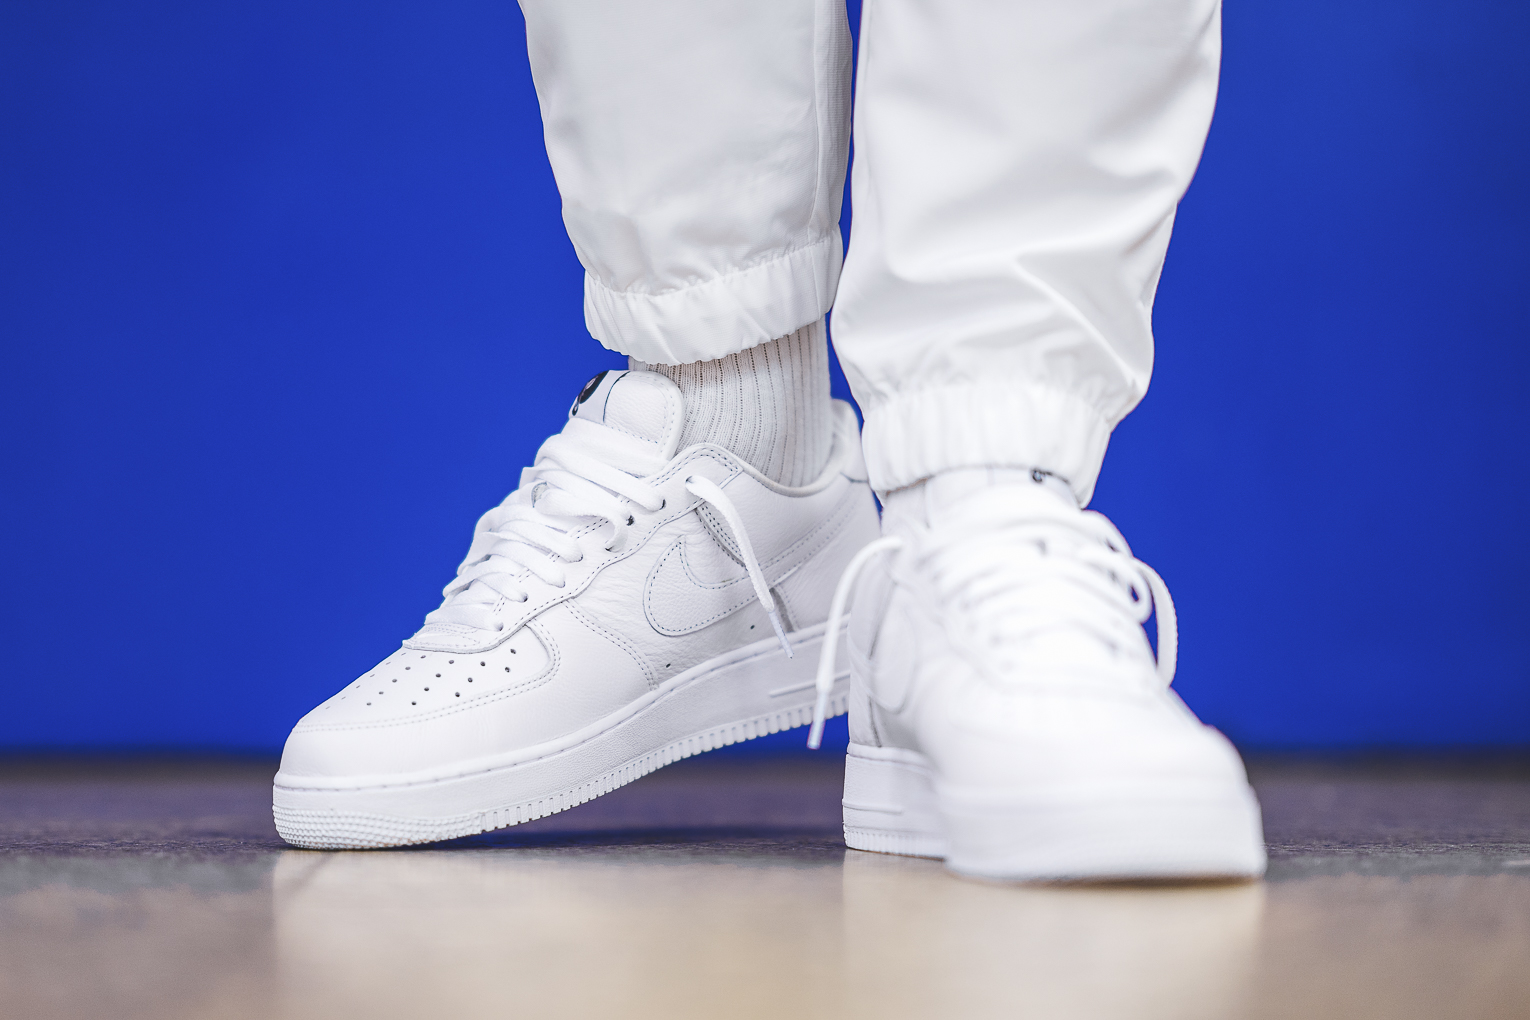 half off 514ec 11ea7 The Nike Air Force 1 Low  07 Roc-A-Fella is set to get a wider release in a  matter of days. What was once also thought to be a ComplexCon exclusive  will ...